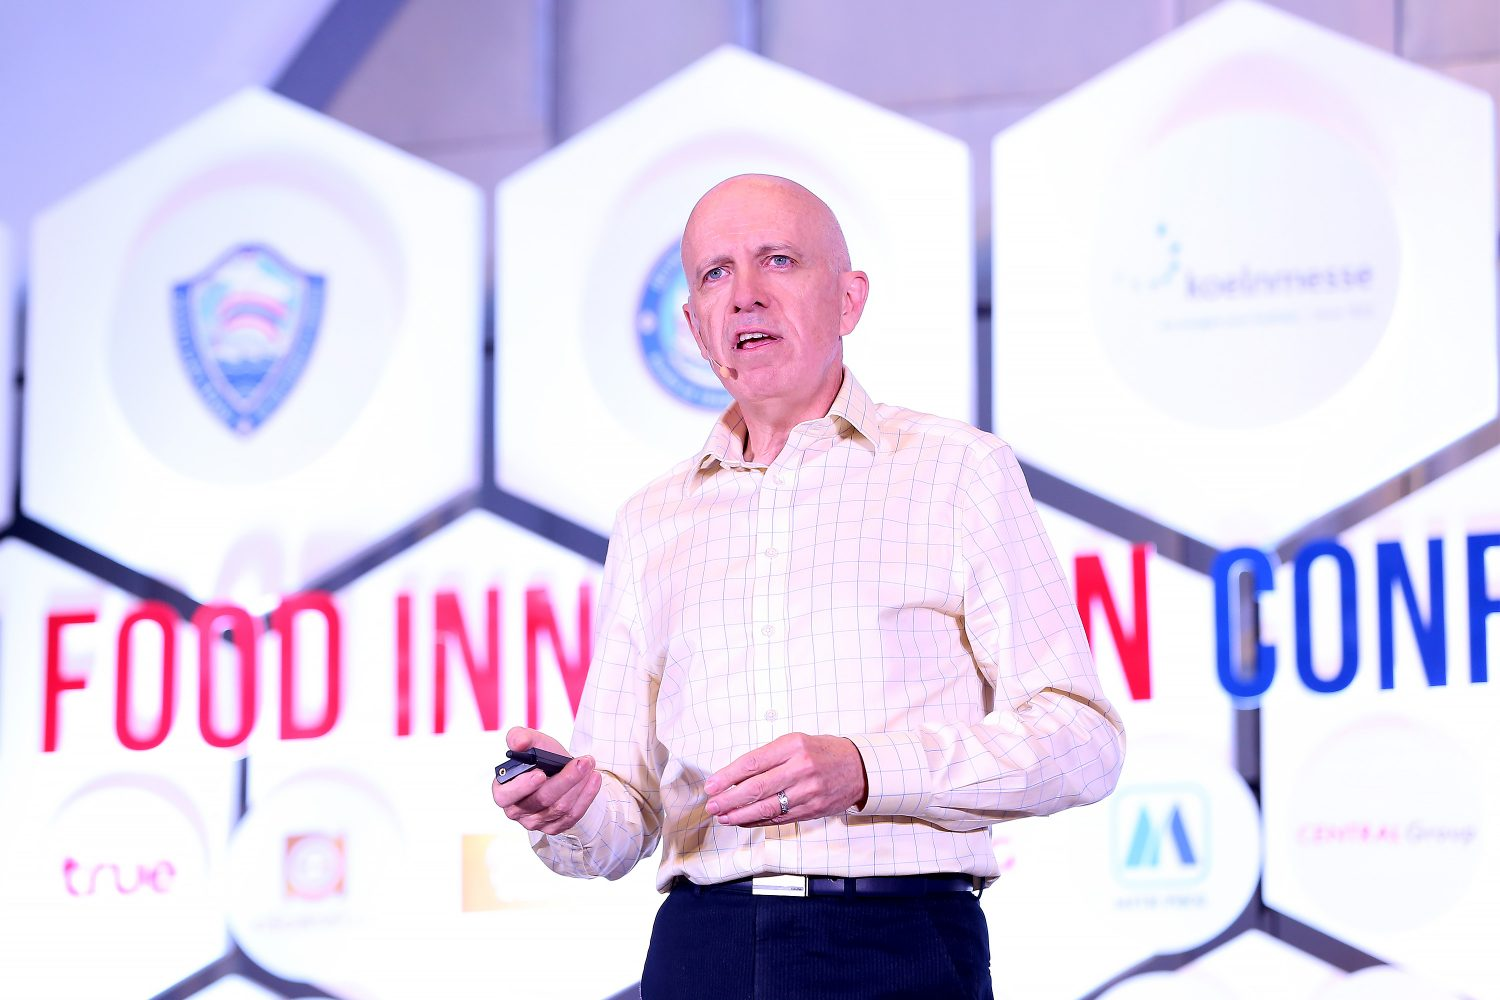 innofoods keynote 30 May 2019